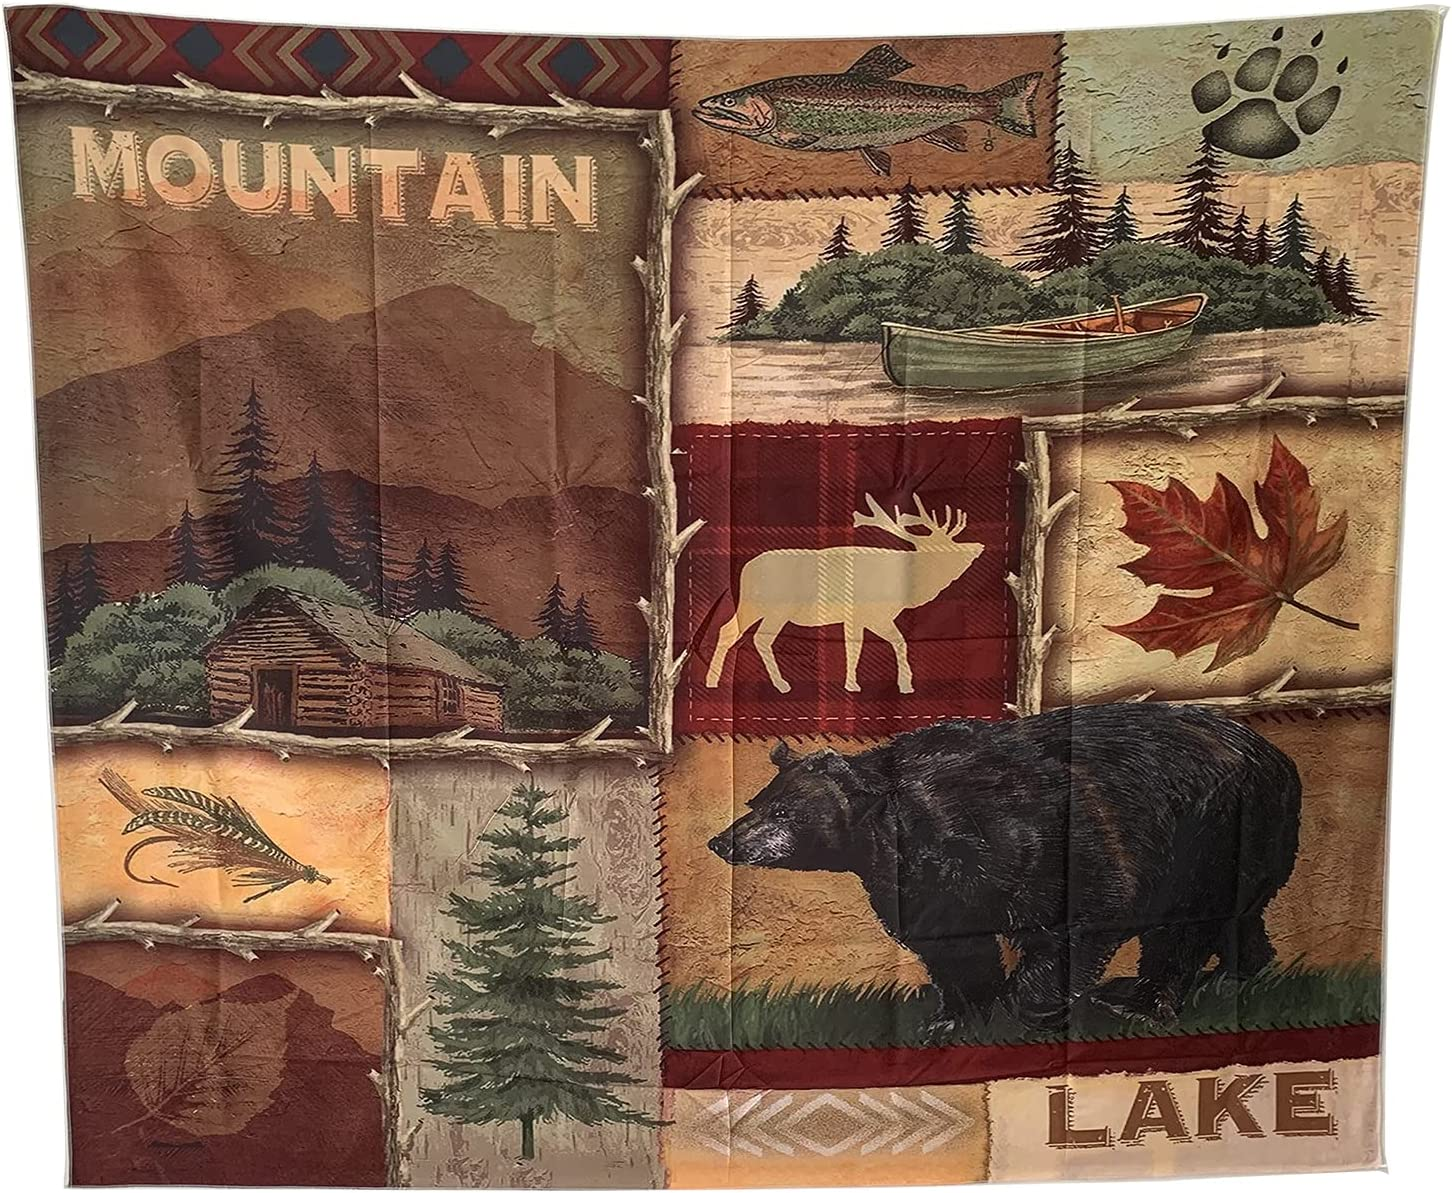 Rustic Lodge Bear Moose Deer Wall Hanging Tapestry, Living Room Dorm Bedroom Decorative Tapestry, Wall Home Decor Art Tapestry, Polyester (51.2x59.1 Inches/130x150 cm)